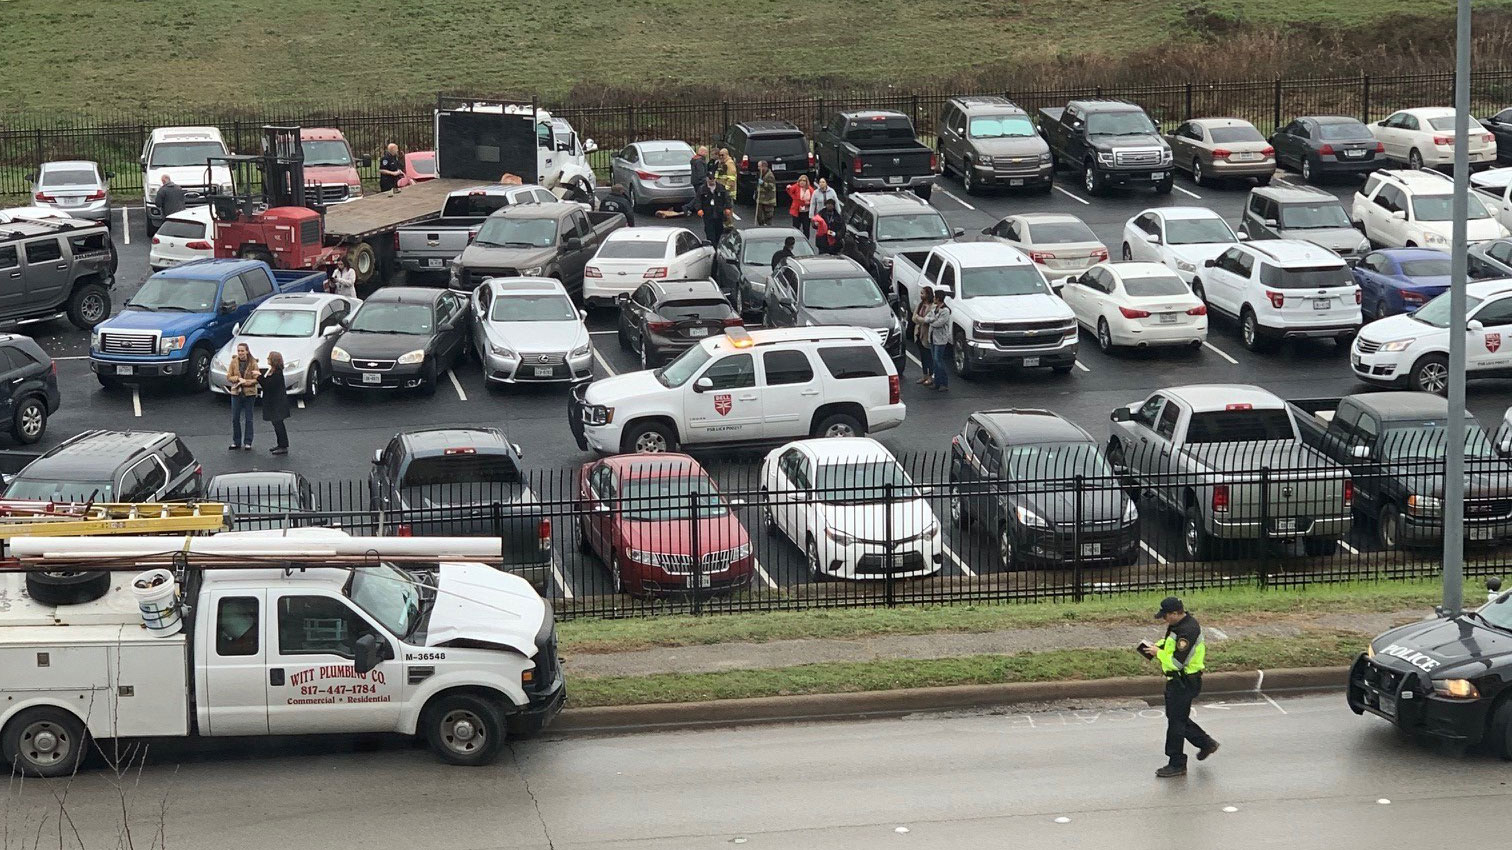 truck crashes into 22 parked cars in bell parking lot - dallas news